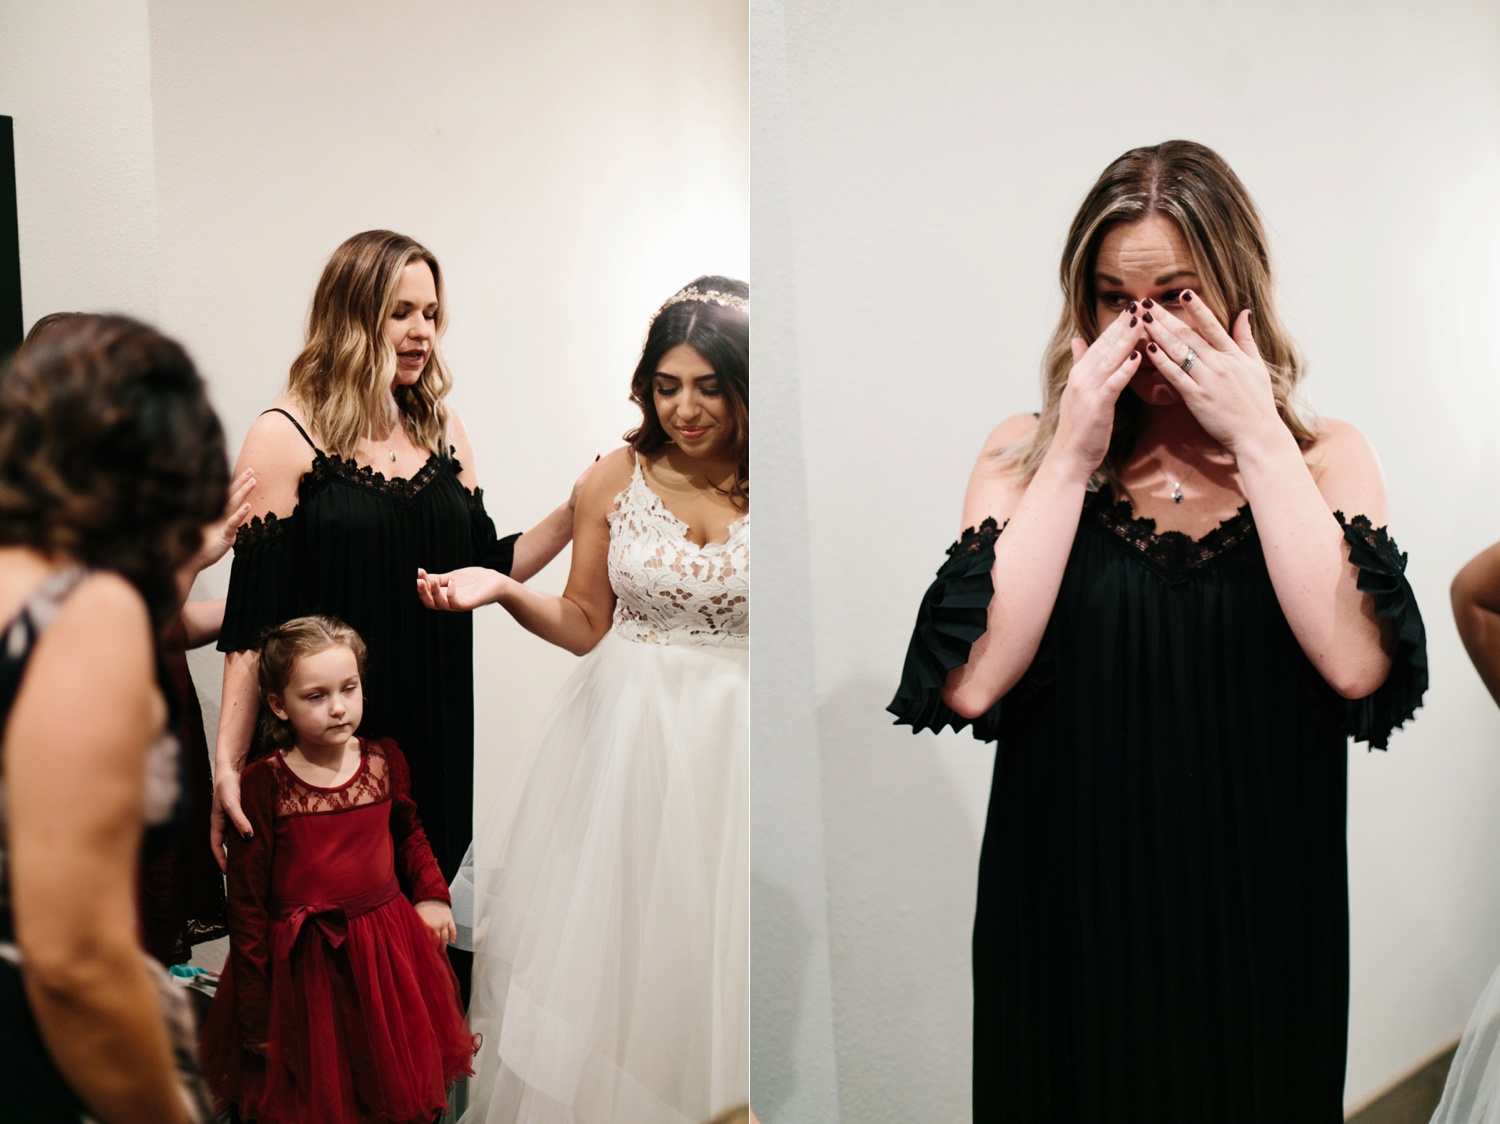 Grant + Lysette | a vibrant, deep burgundy and navy, and mixed metals wedding at Hidden Pines Chapel by North Texas Wedding Photographer Rachel Meagan Photography 052